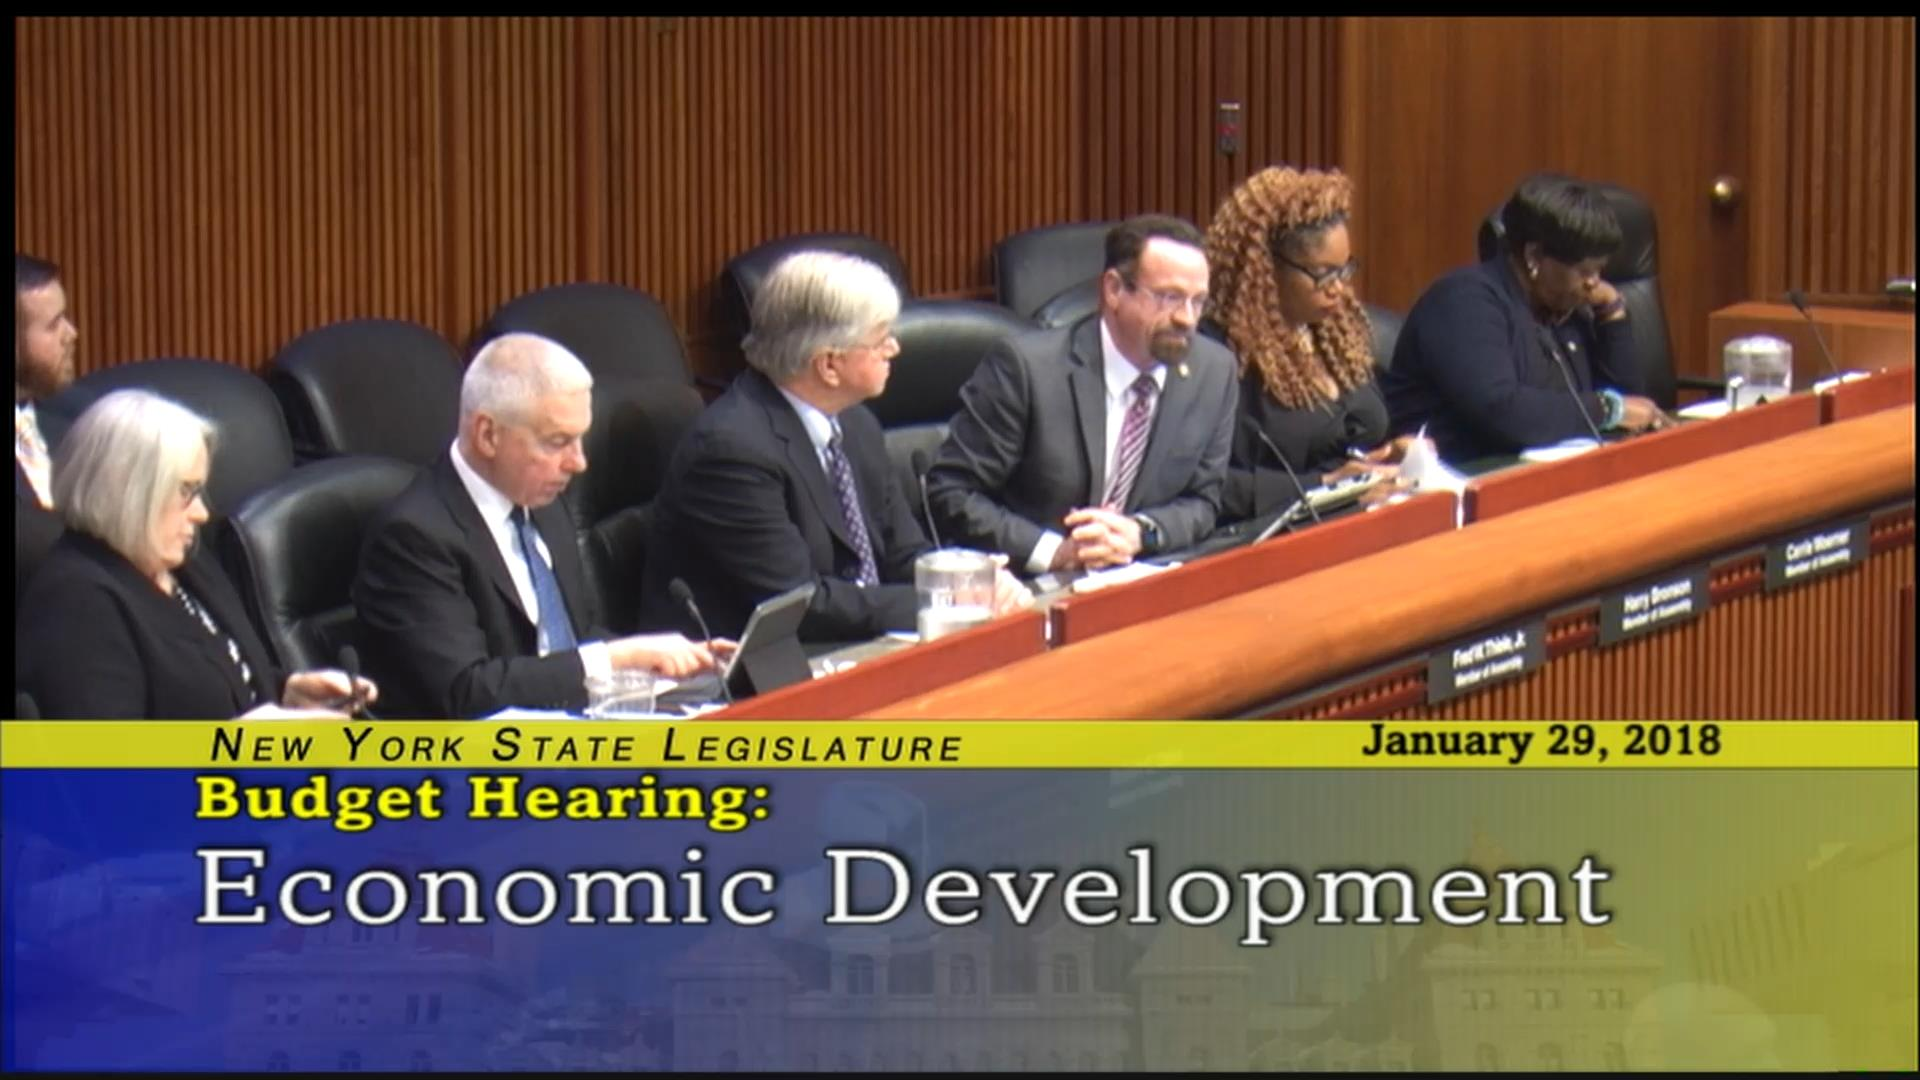 Budget Hearing on Economic Development